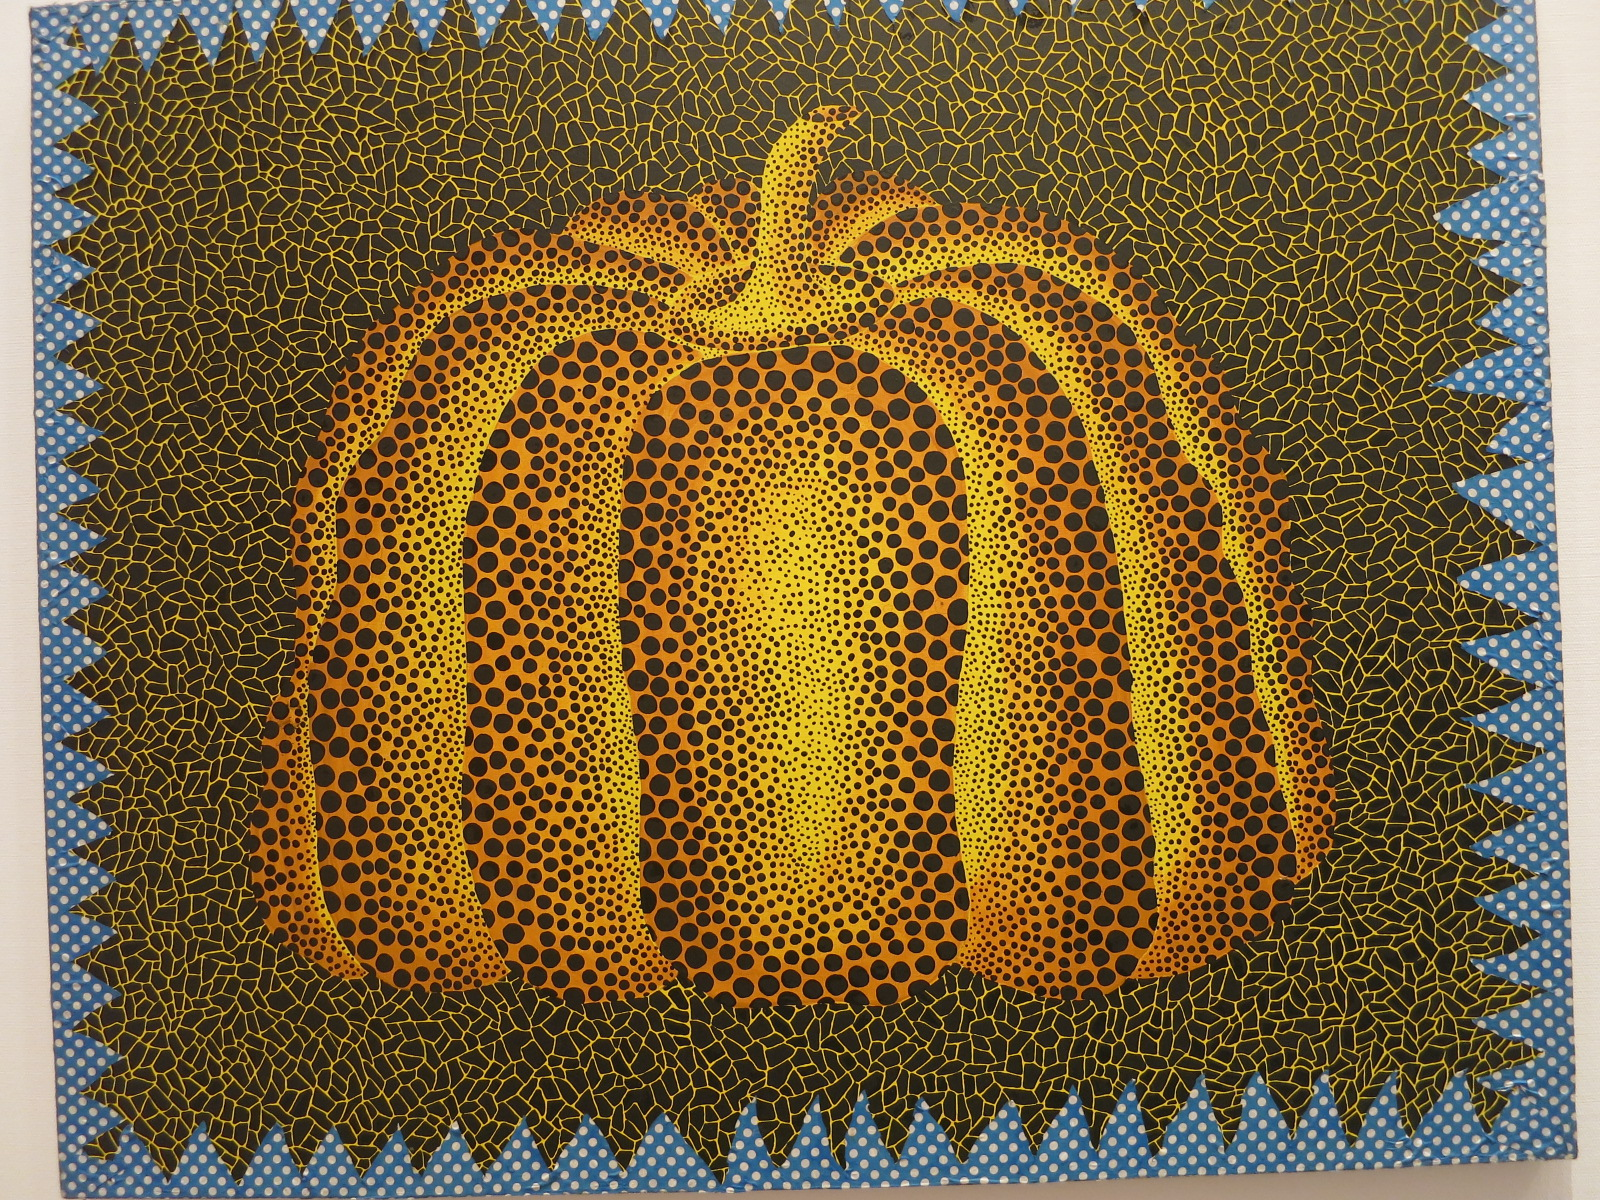 Yayoi Kusama's 1980s works in the In Infinity Retrospective at the Louisiana Museum of Modern Art, Denmark 2015. 'Pumpkin' 1980. Acrylic paint and printed fabric.